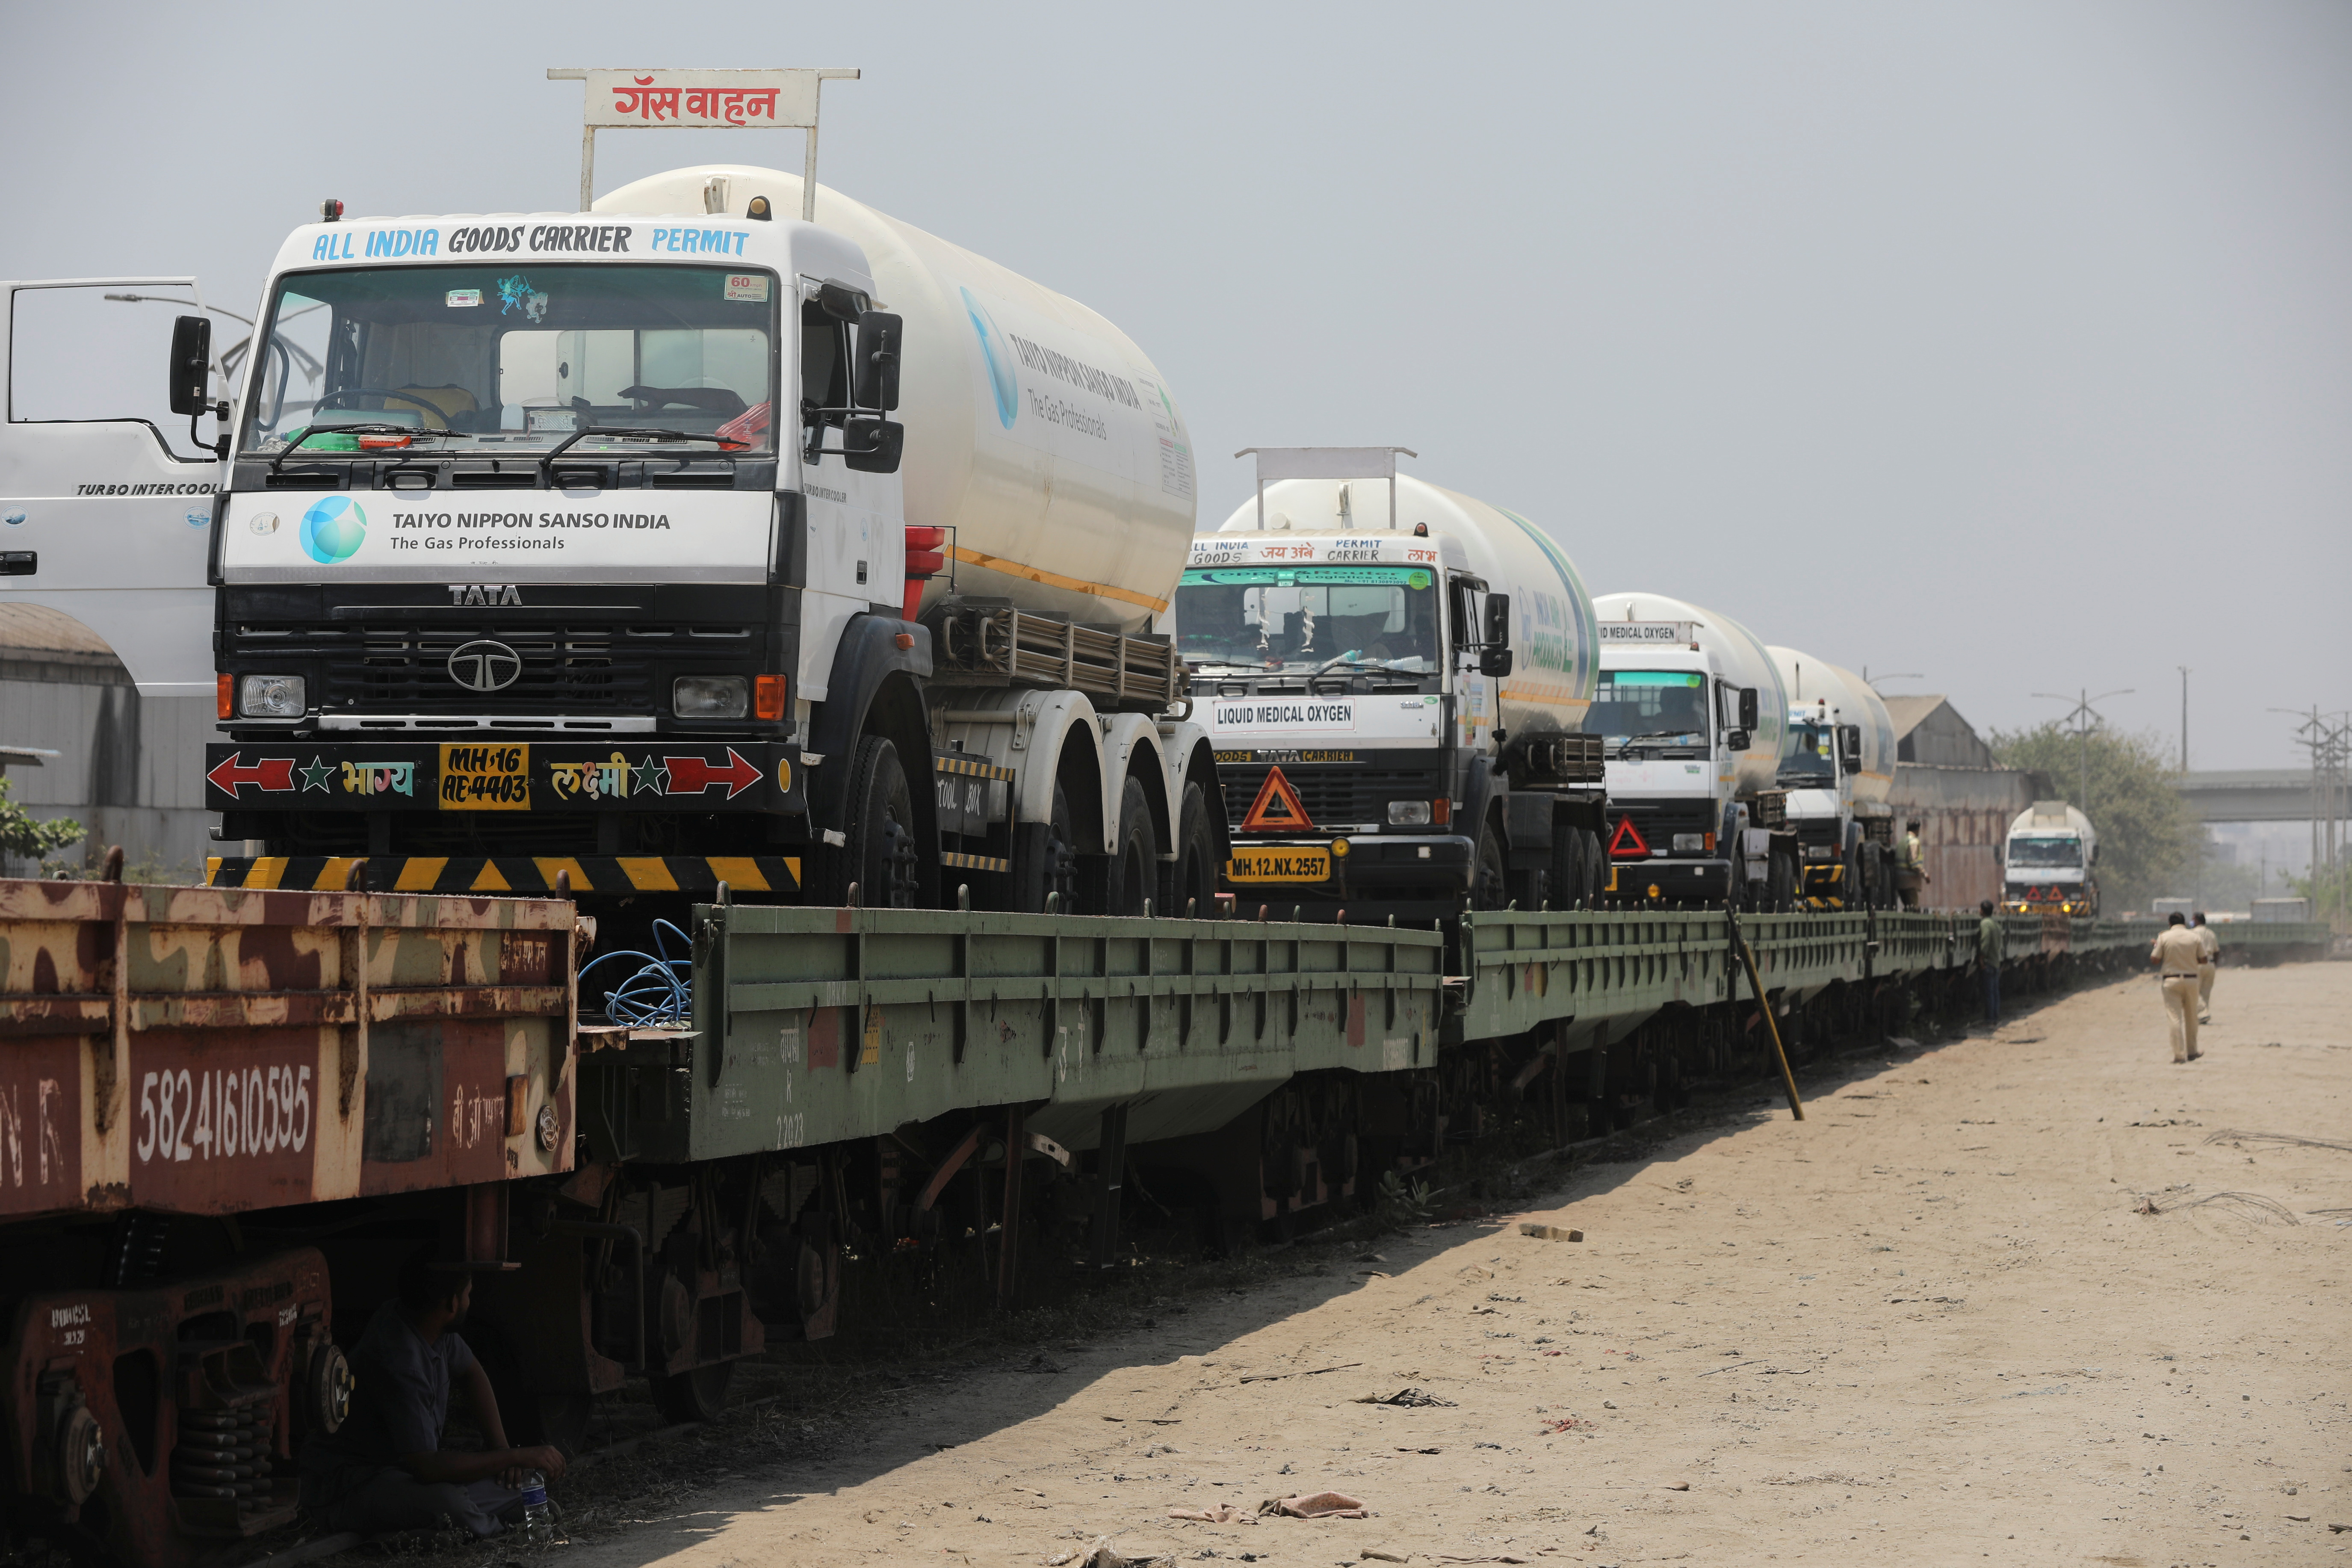 Empty cryogenic tankers are seen onboard the bogie open military new (BOMN) wagon before being transported to a Liquid Medical Oxygen (LMO) plant from another state for refilling with liquid oxygen, amidst the spread of the coronavirus disease (COVID-19), on the outskirts of Mumbai, India, April 19, 2021. REUTERS/Francis Mascarenhas